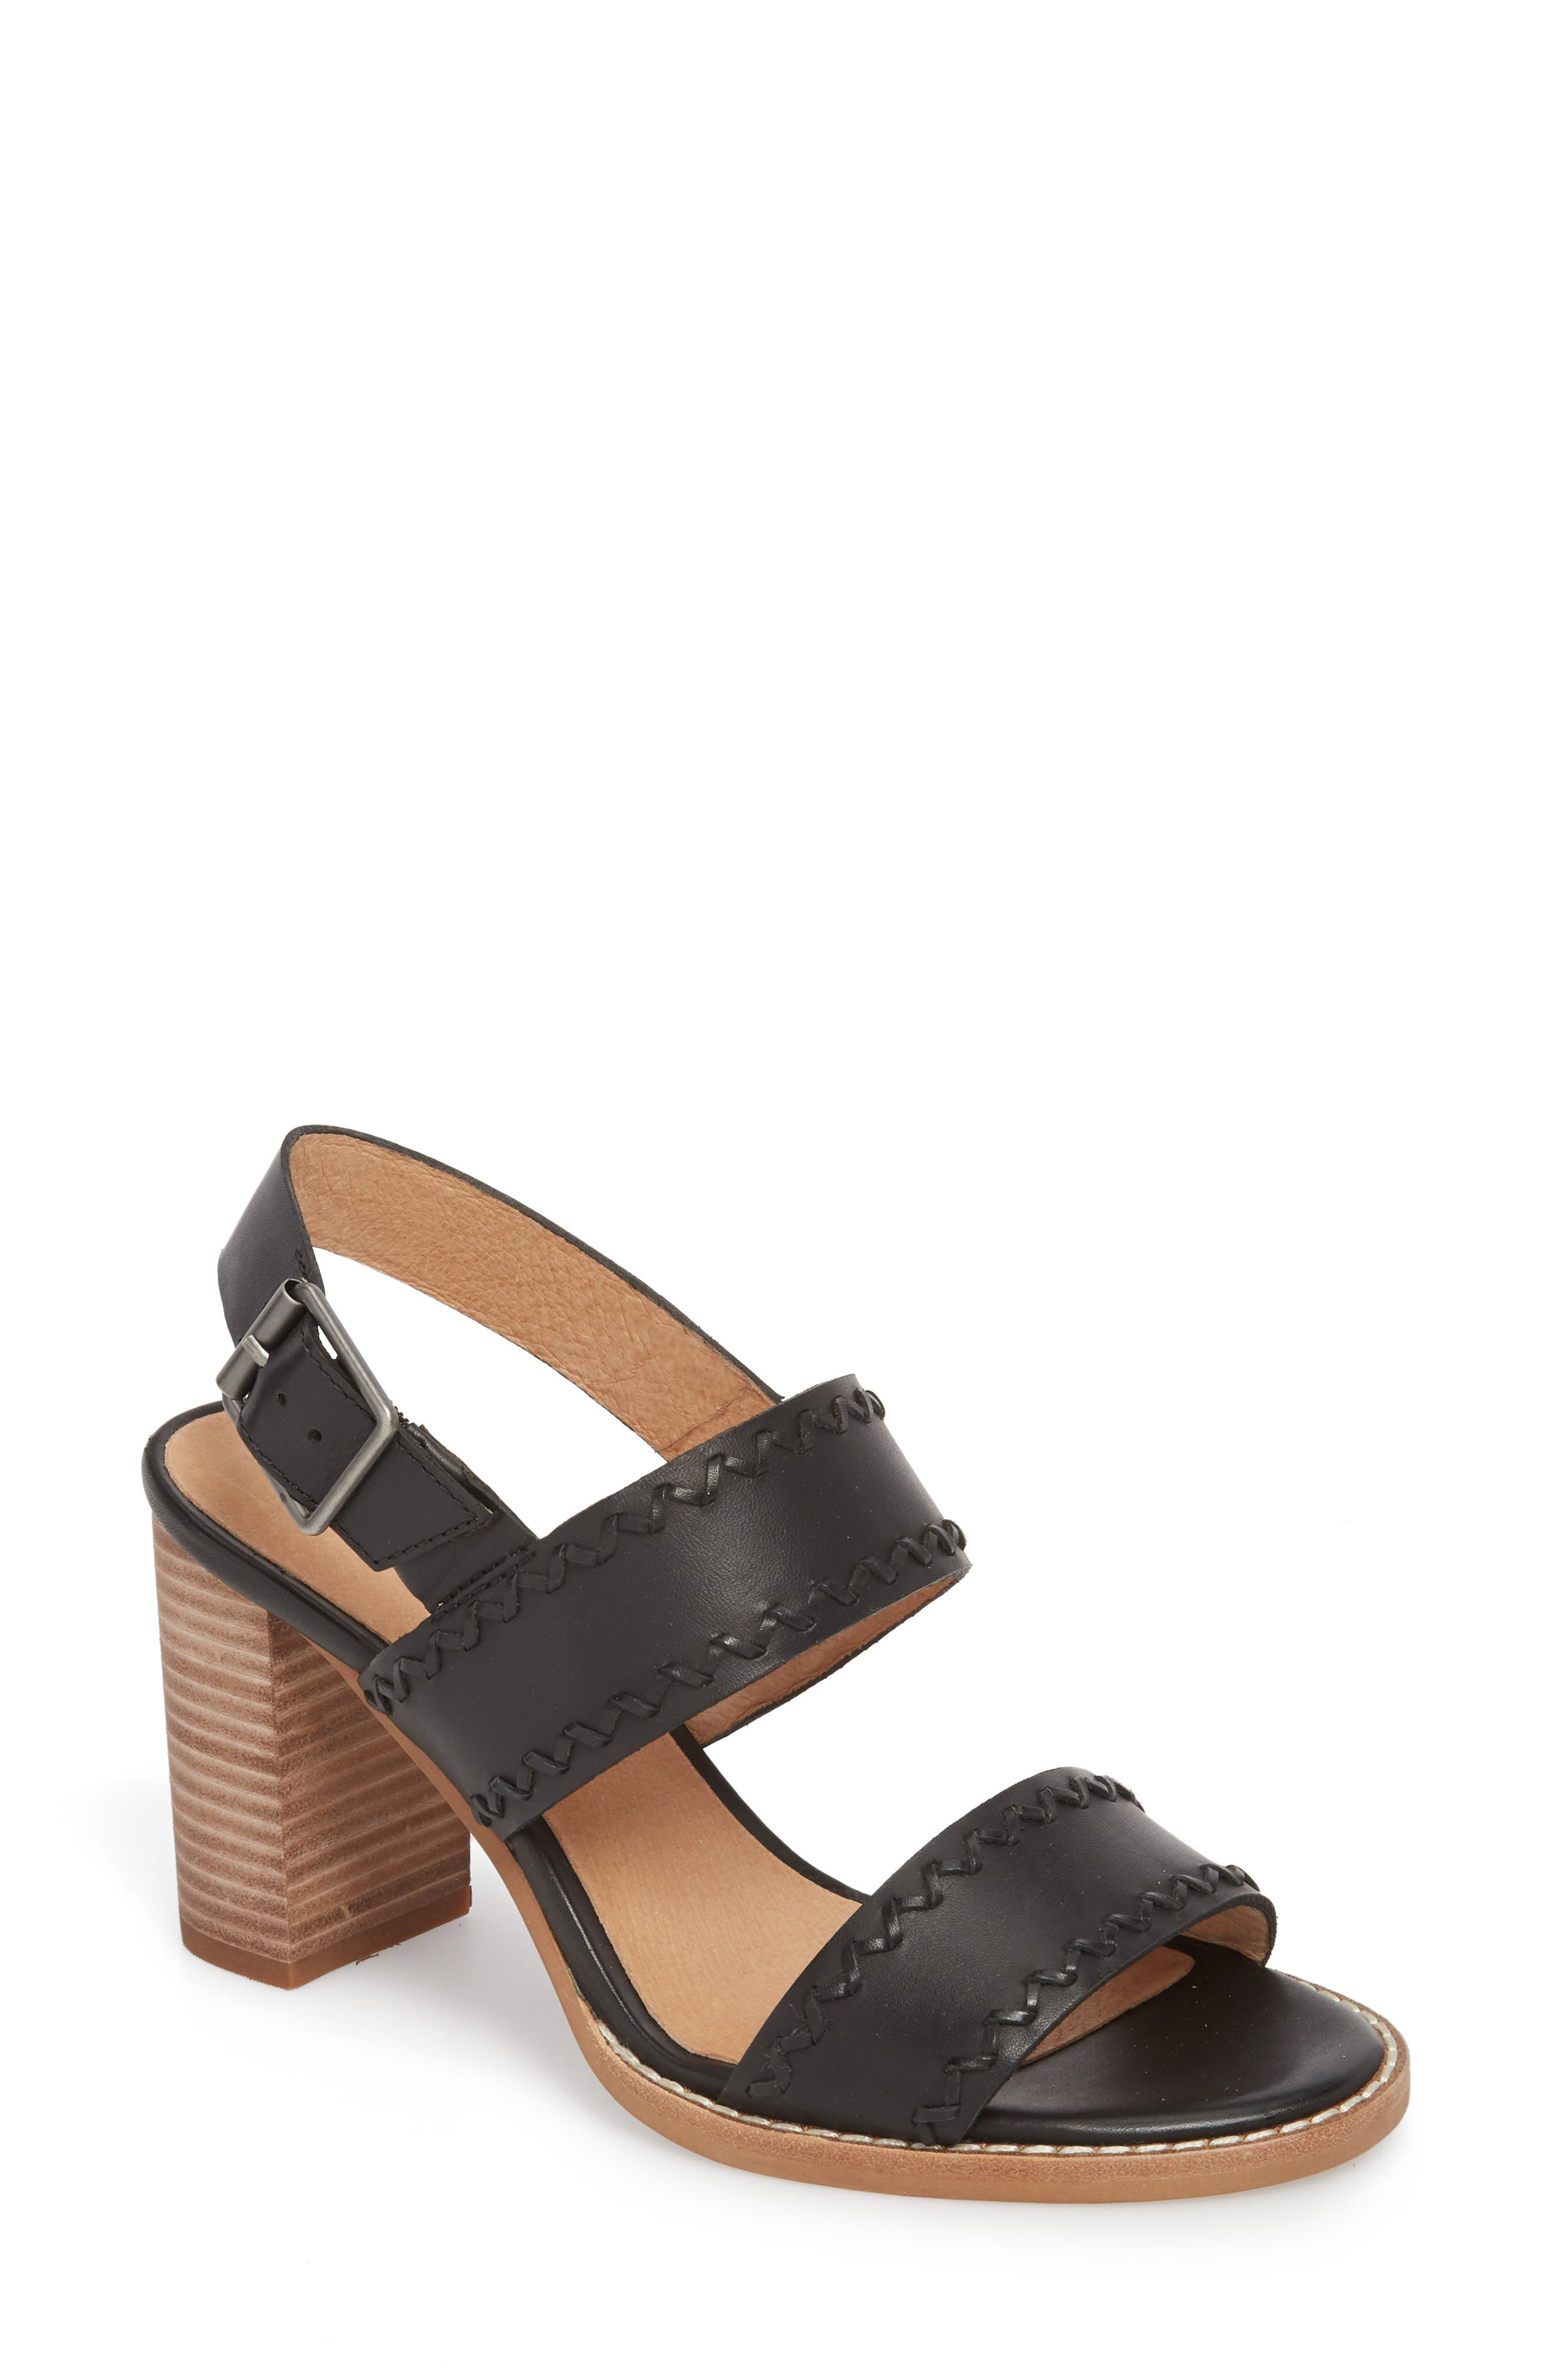 Giana Sandal,                             Main thumbnail 1, color,                             True Black Leather